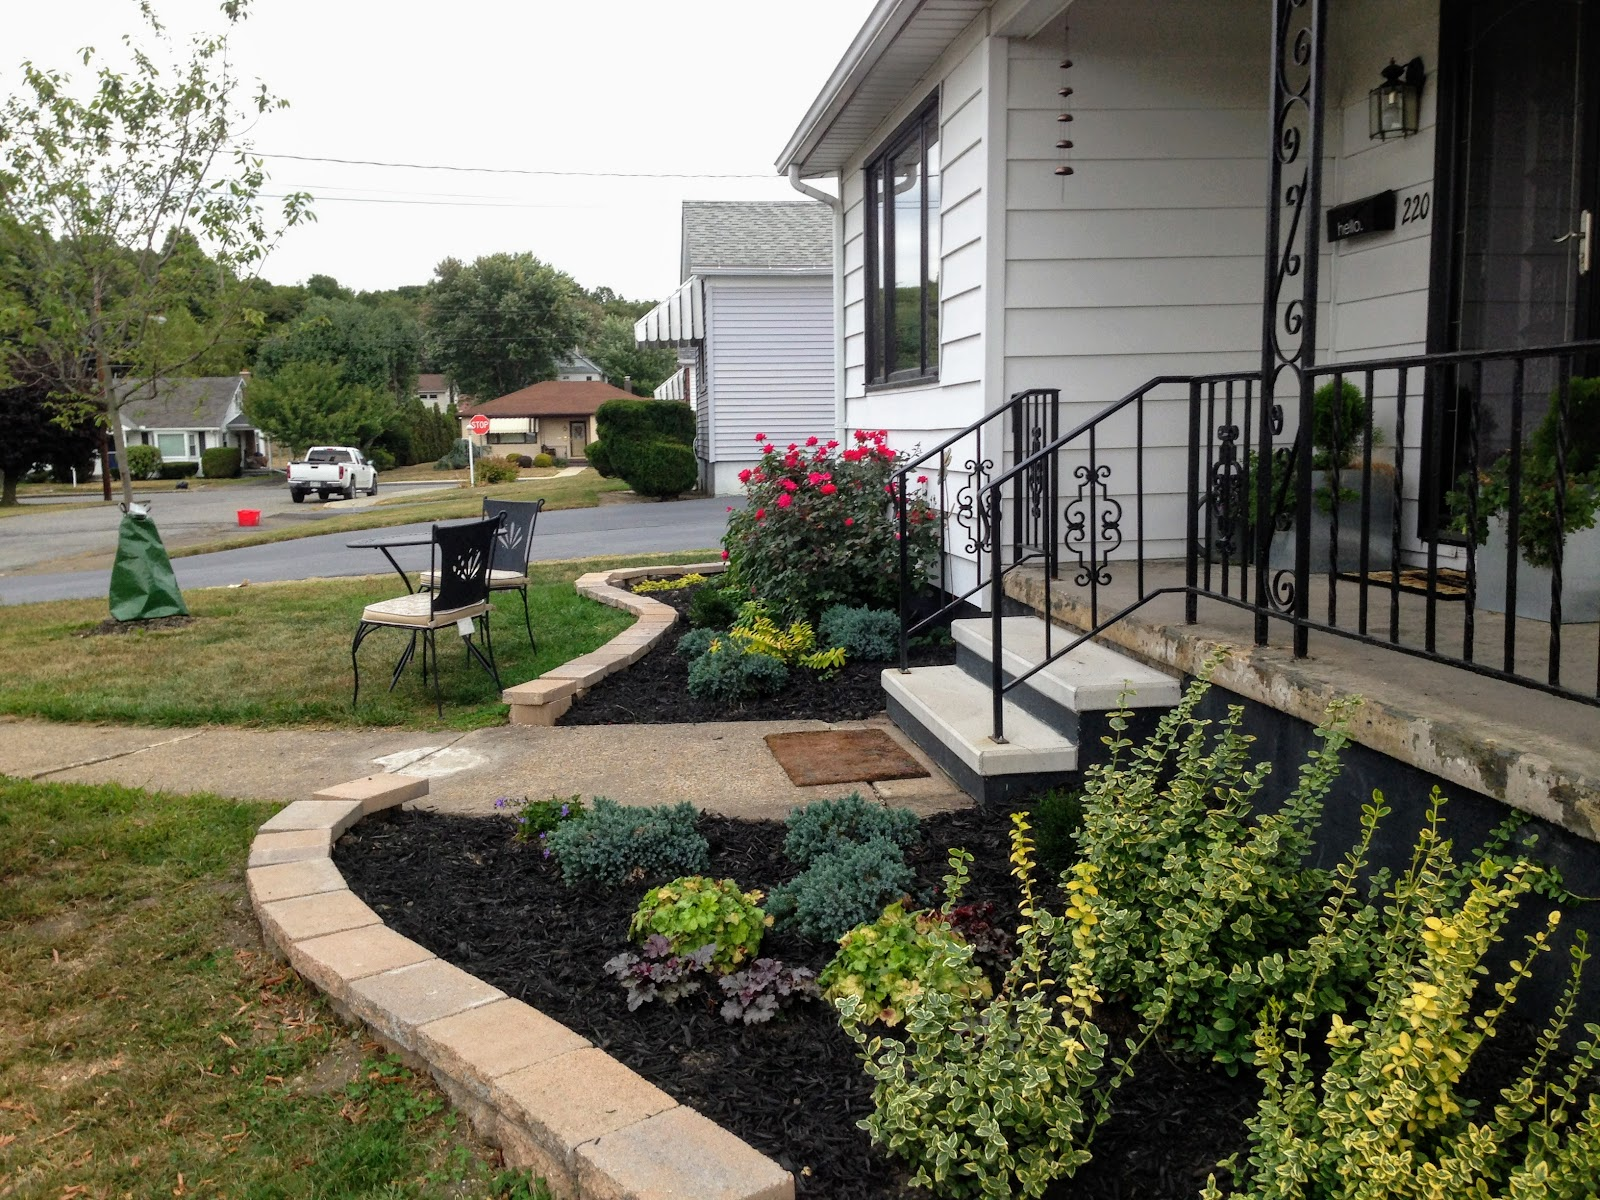 Here's another view of the landscaping near the house and how I curved the edging. The caps have not been cut just yet.